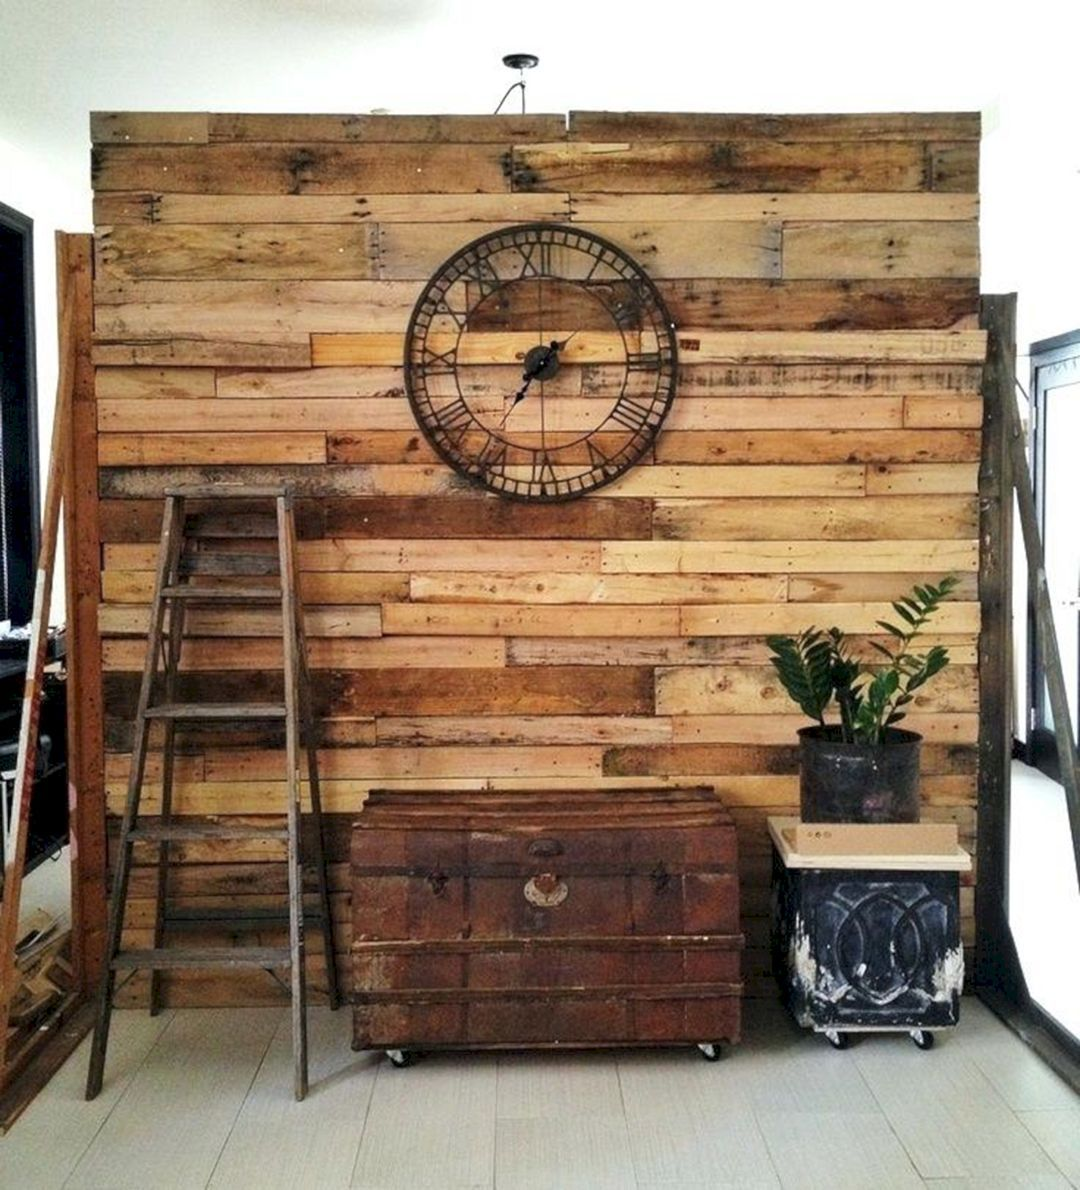 15 Wicked Rustic Bedroom Designs That Will Make You Want Them: 12 Most Creative Wooden Wall Hanging Ideas For Your Living